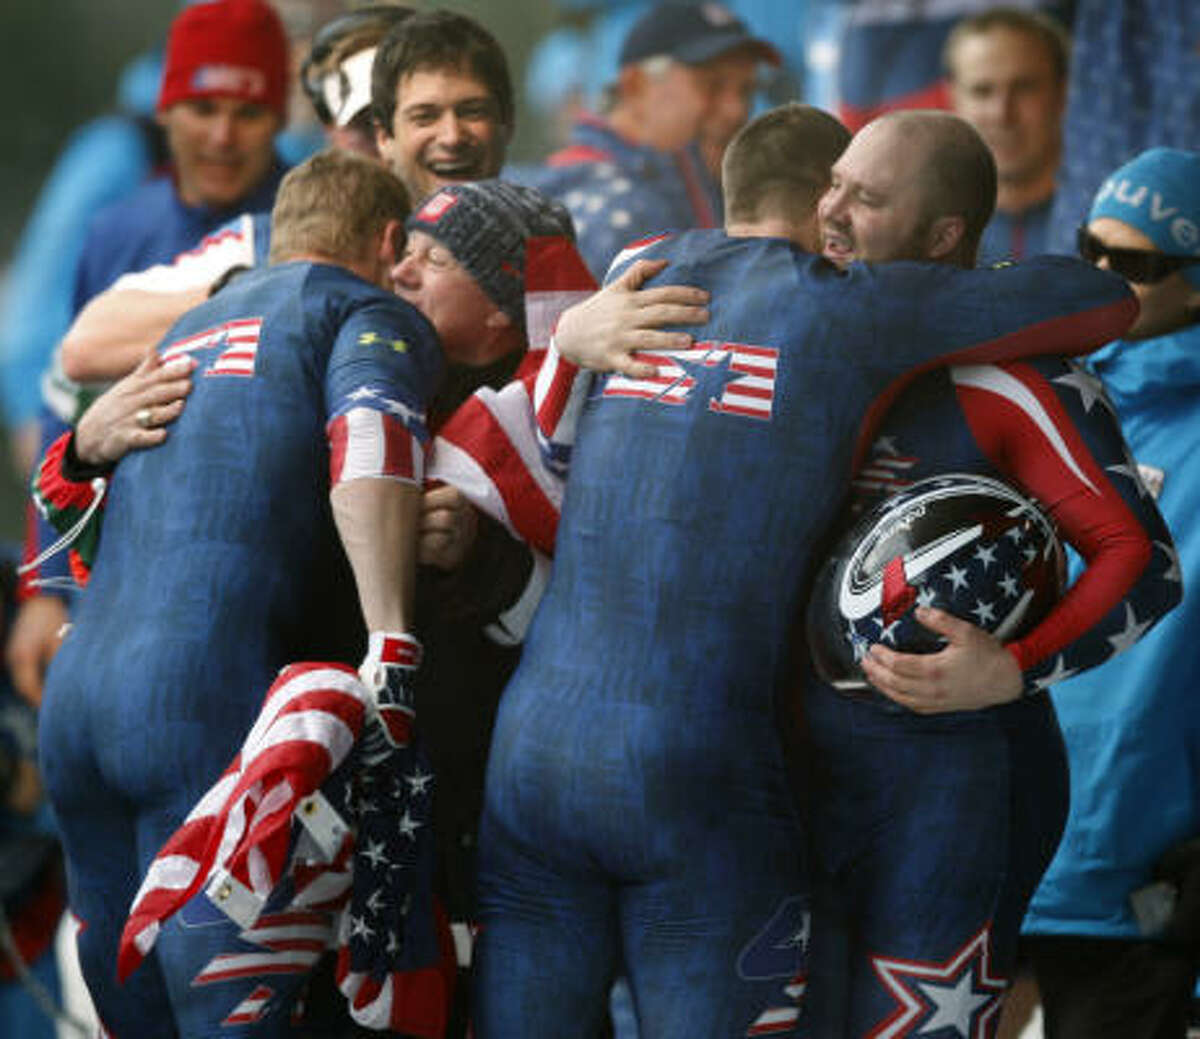 Steven Holcomb, right, and his teammates celebrate their gold medal win.